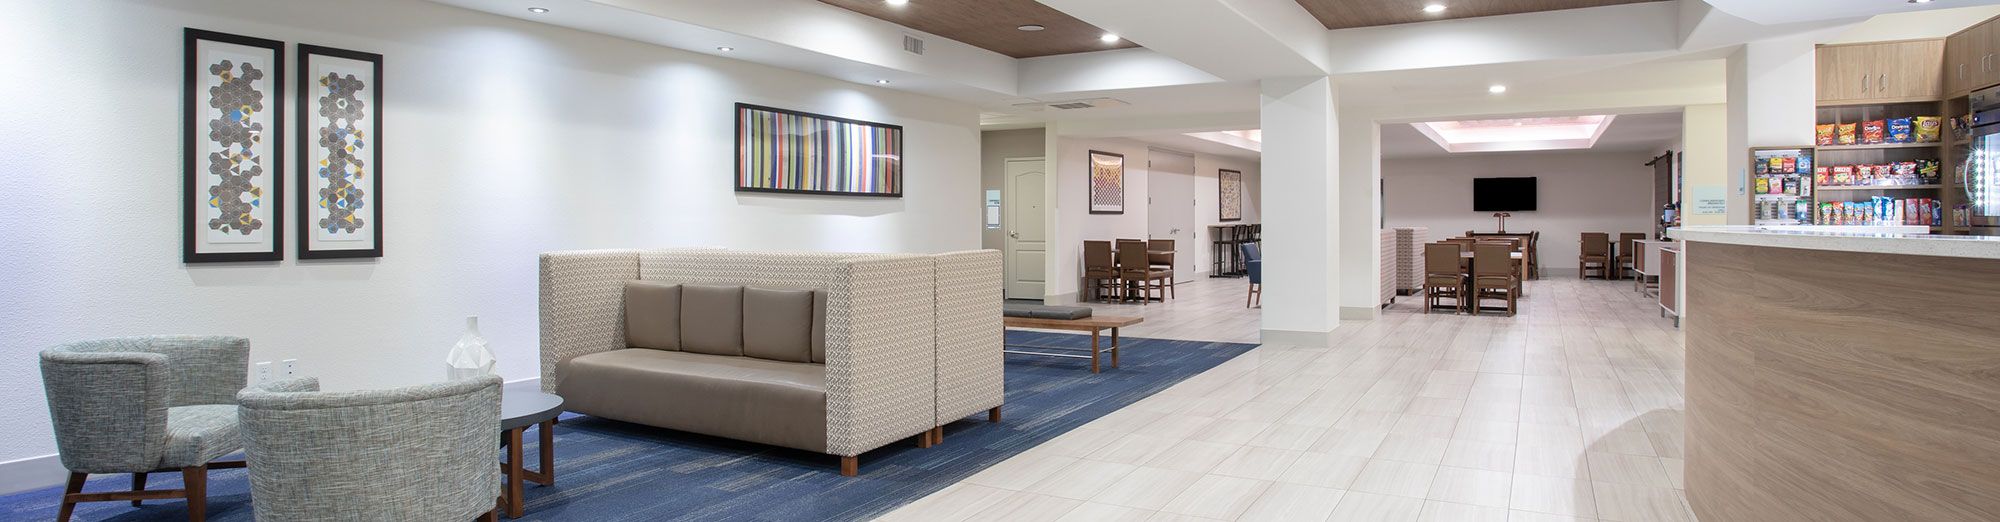 lobby area seating and front desk